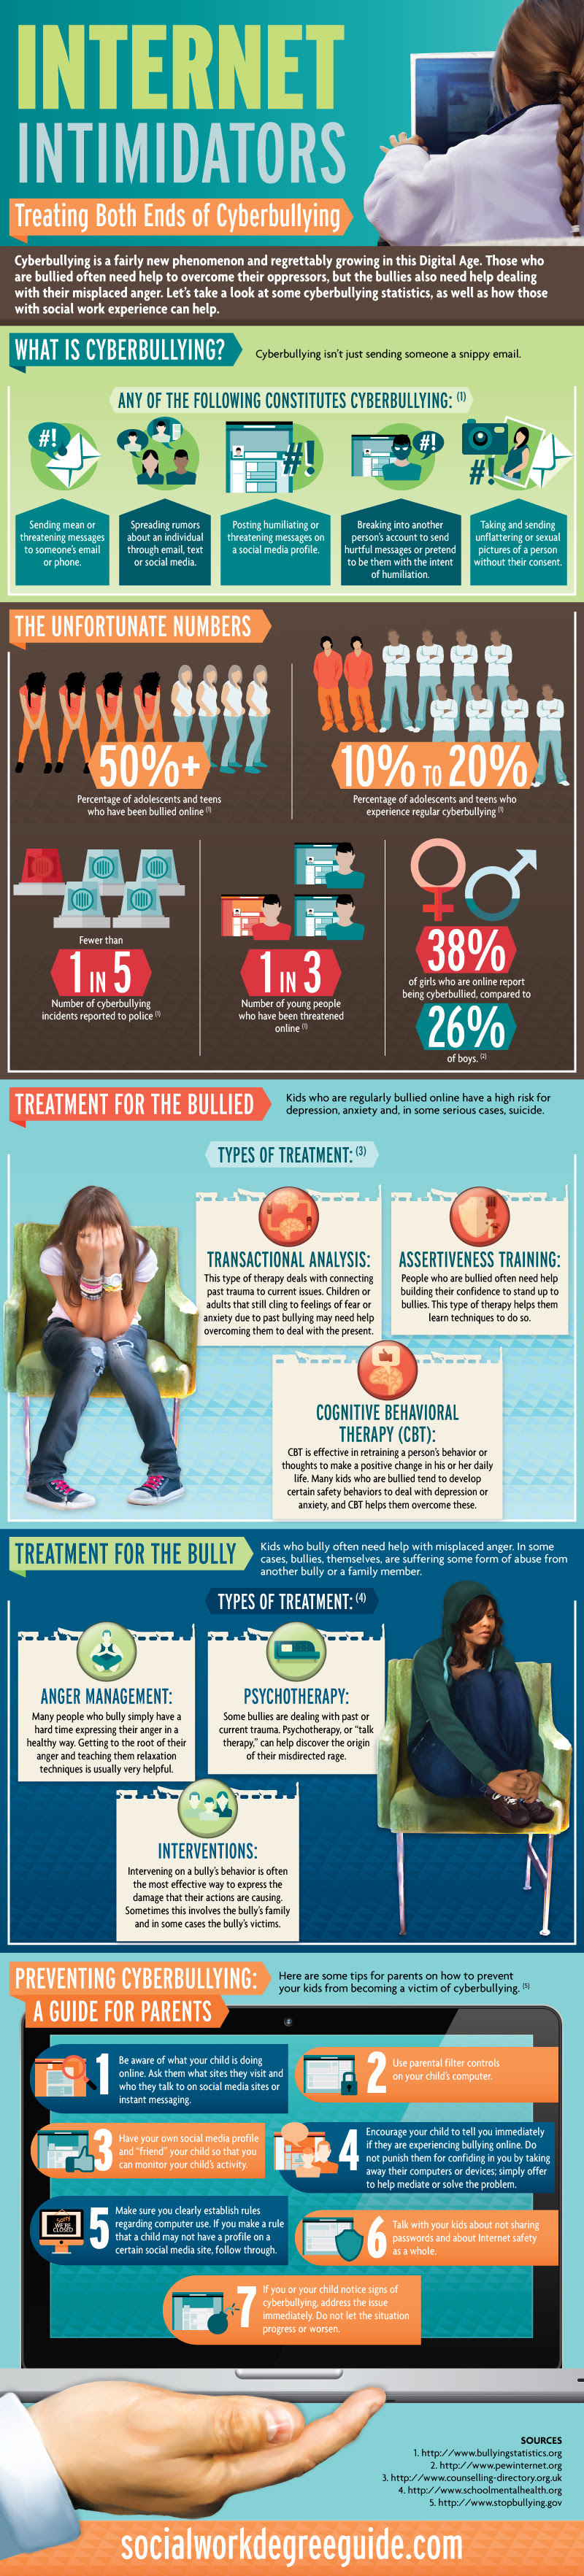 Infographic: Internet Intimidators: Treating Both Sides of Cyberbullying